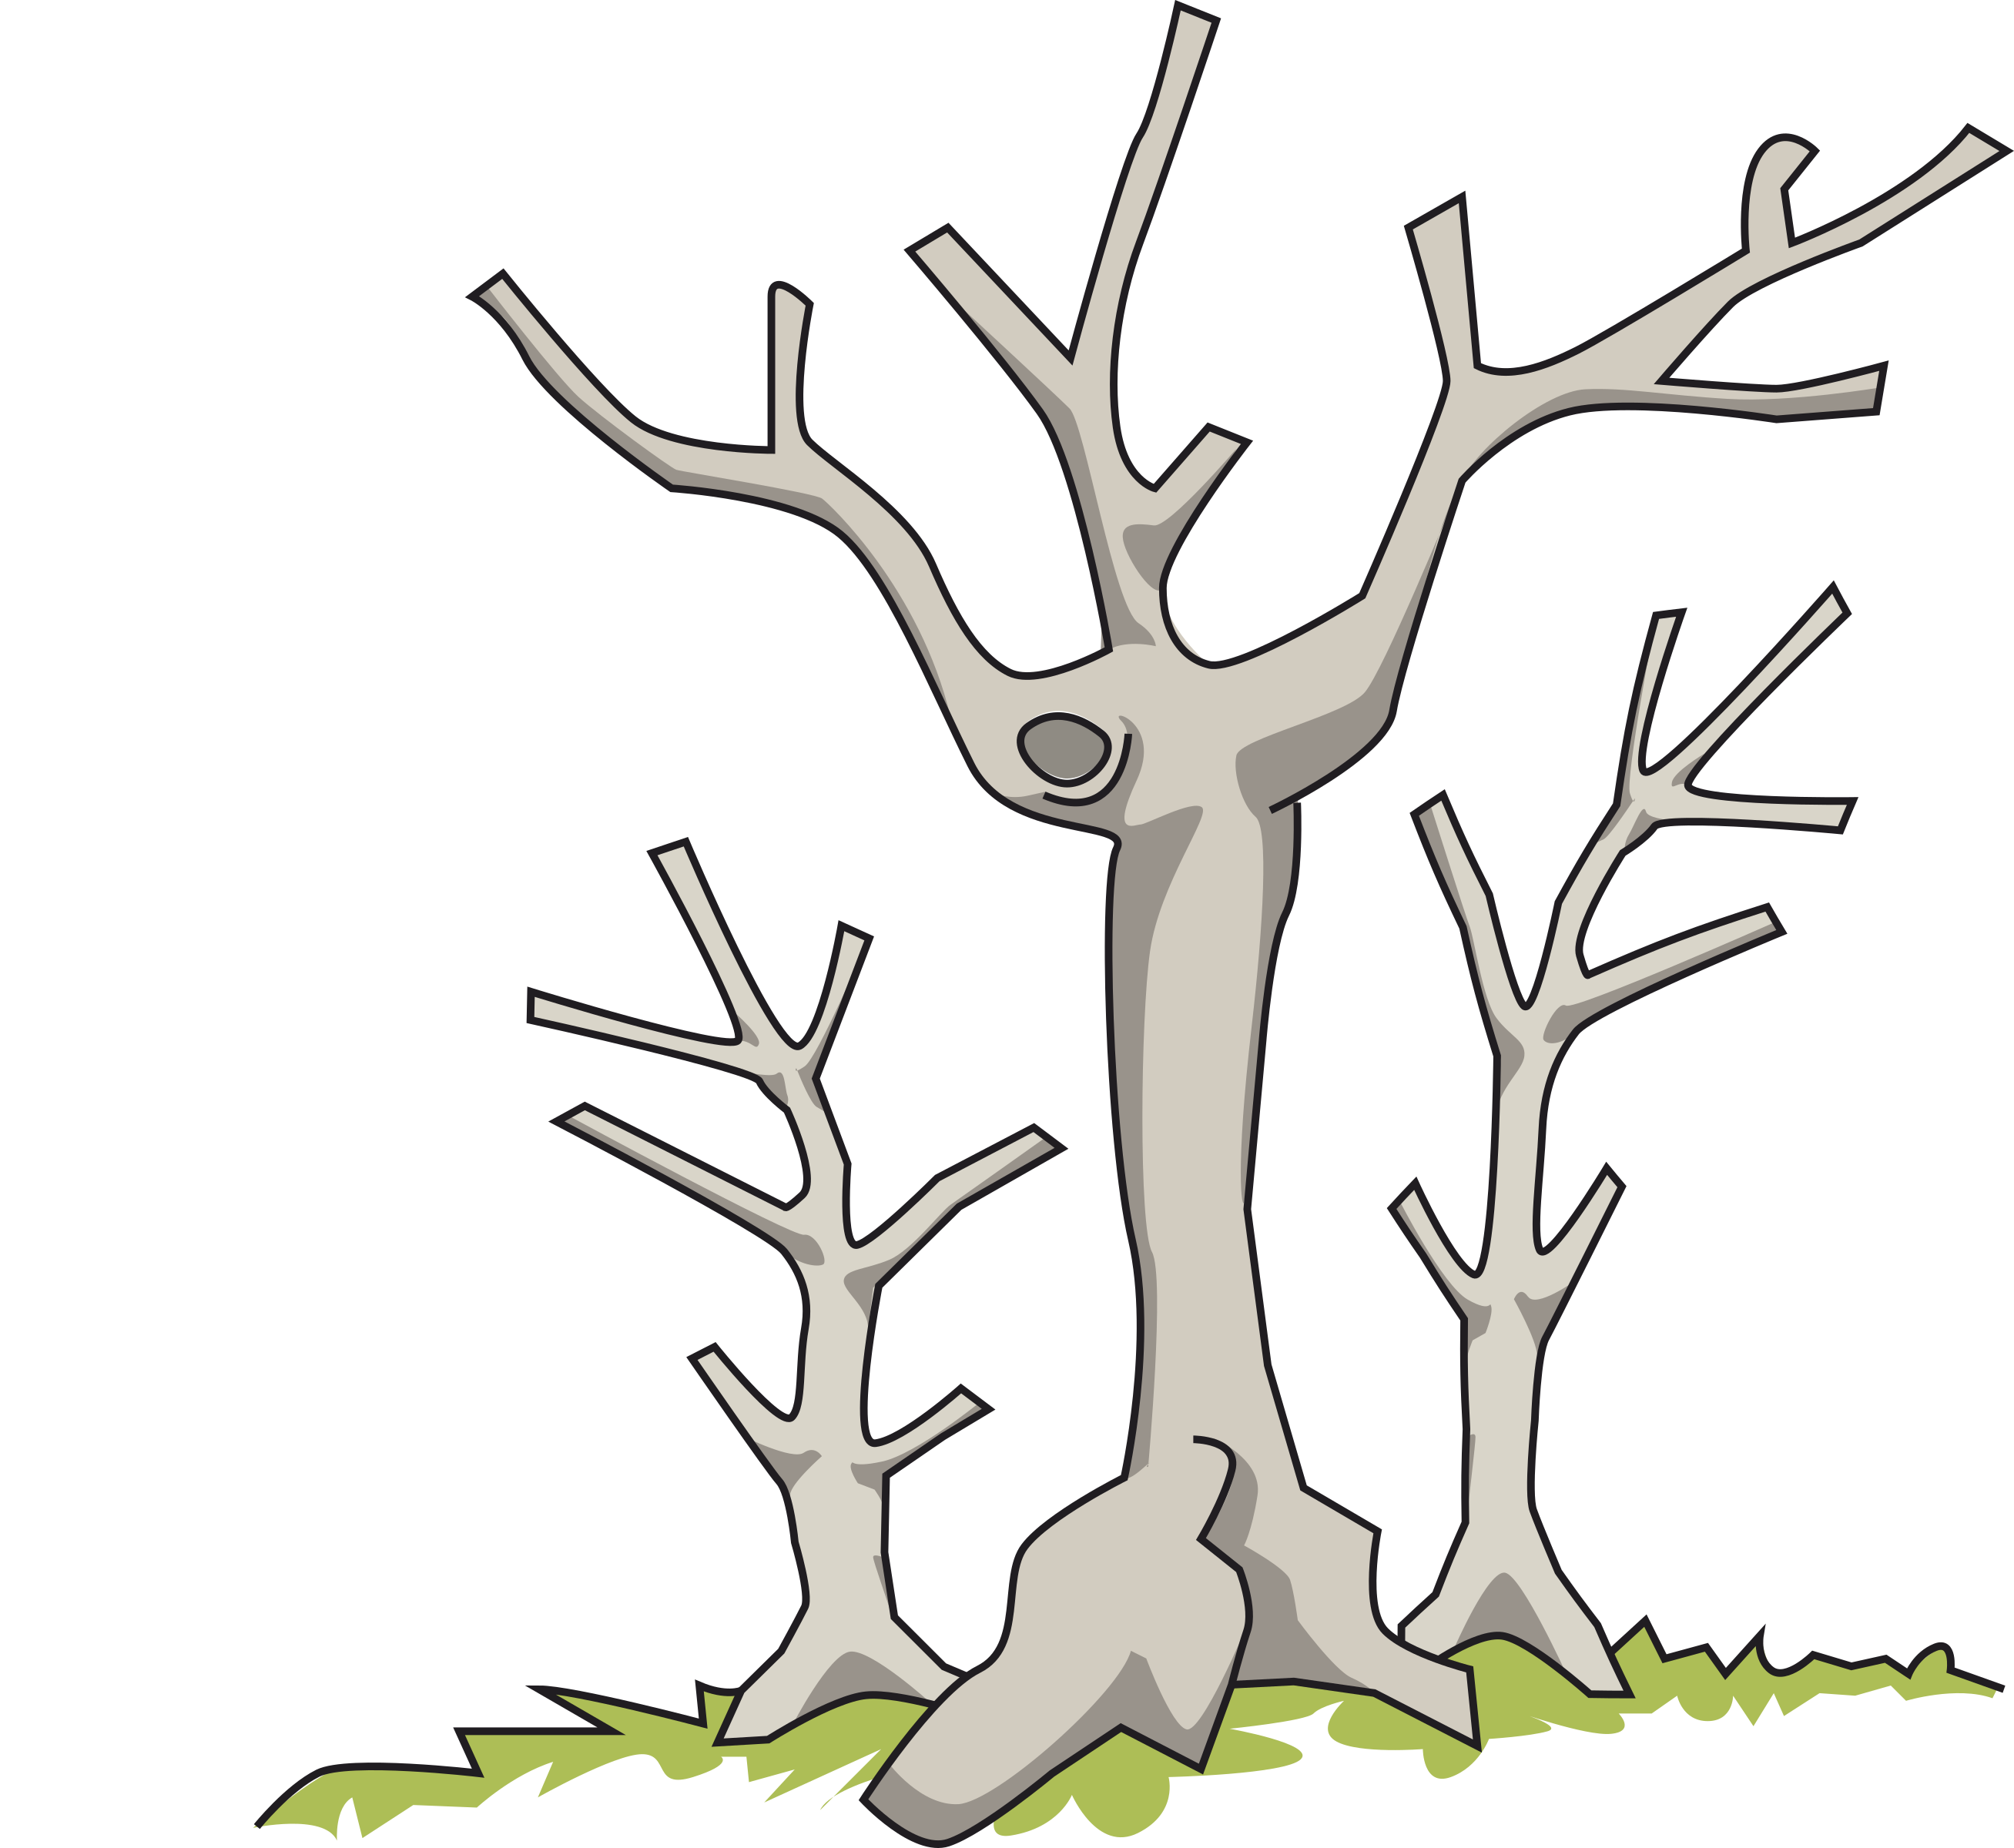 Dead Tree clipart #10, Download drawings